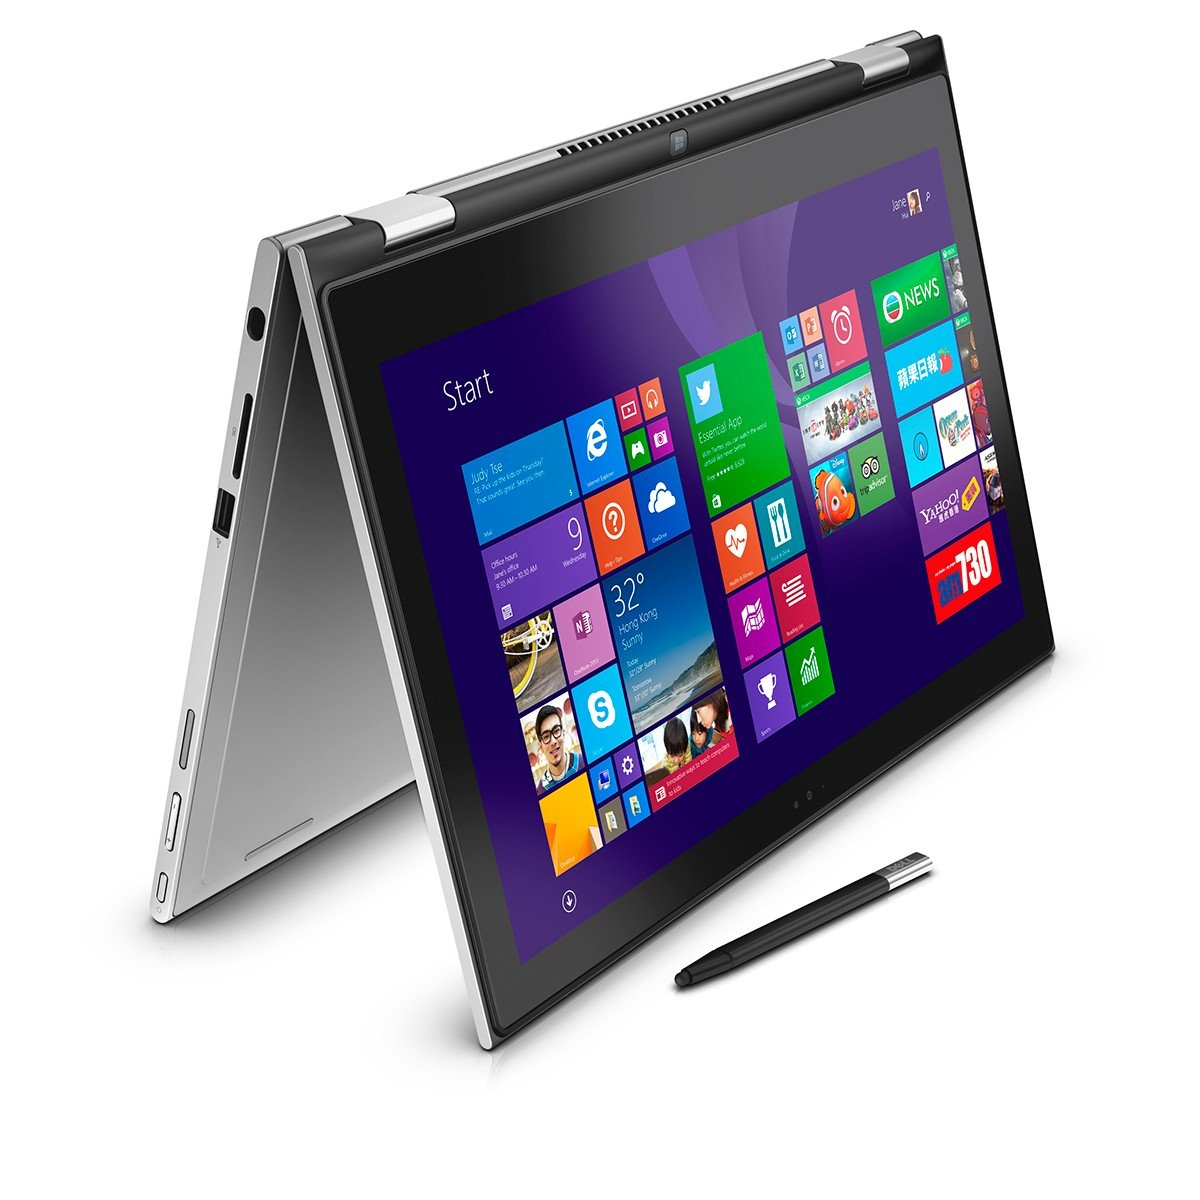 Dell Inspiron 7348 13-inch Touchscreen Laptop